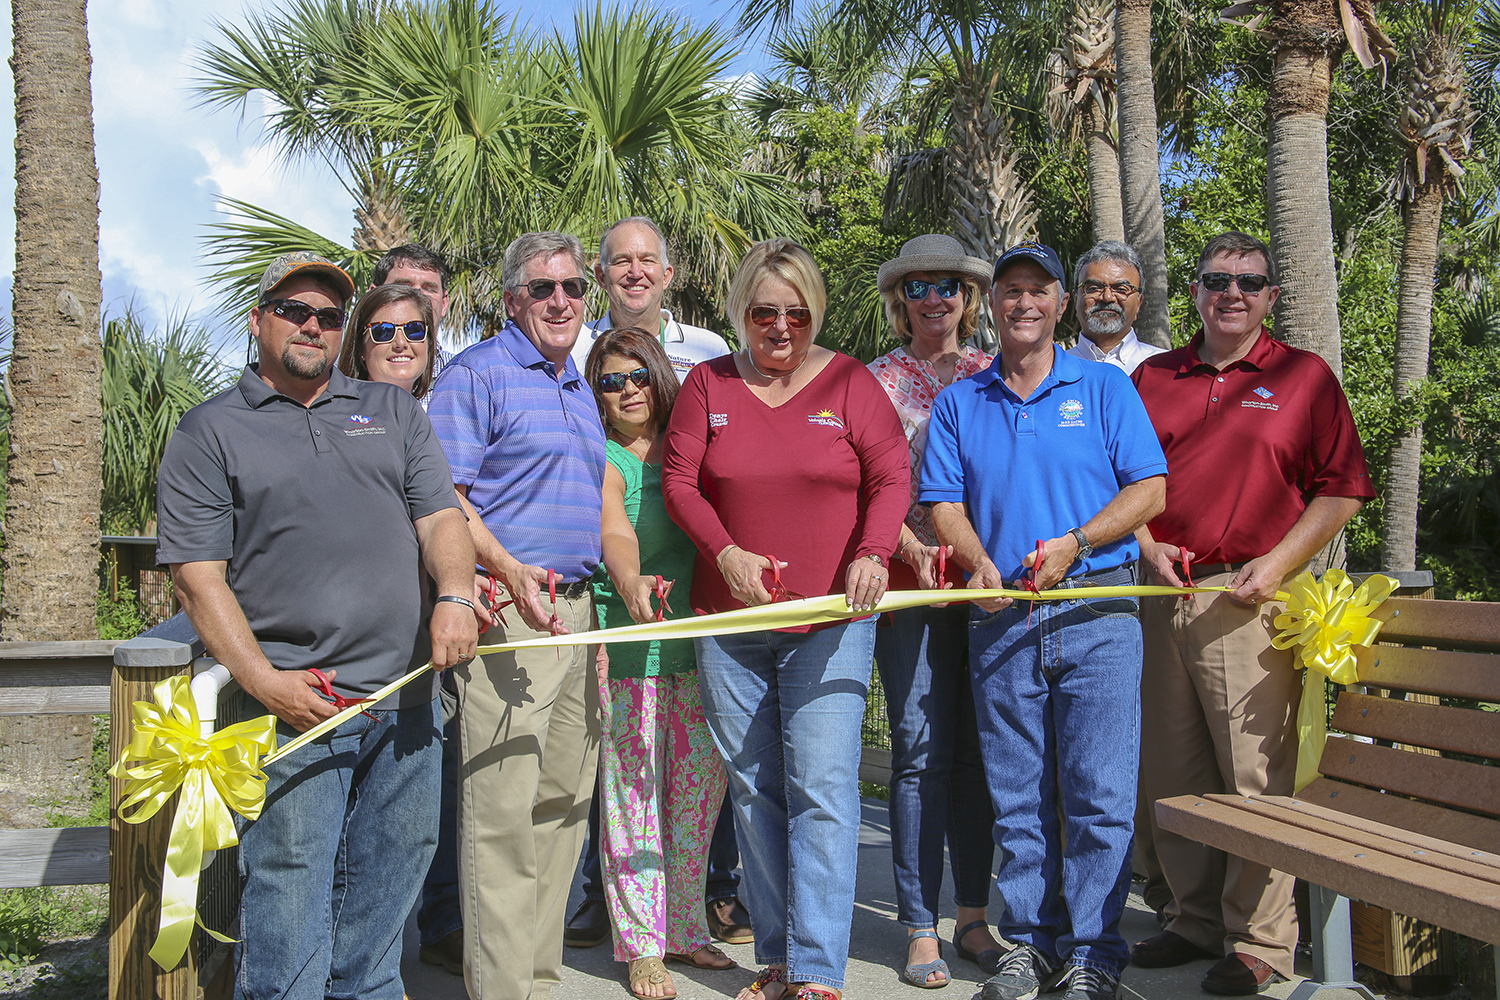 Wharton-Smith Celebrates Completion of the Smyrna Dunes Park Boardwalk Renovation Project